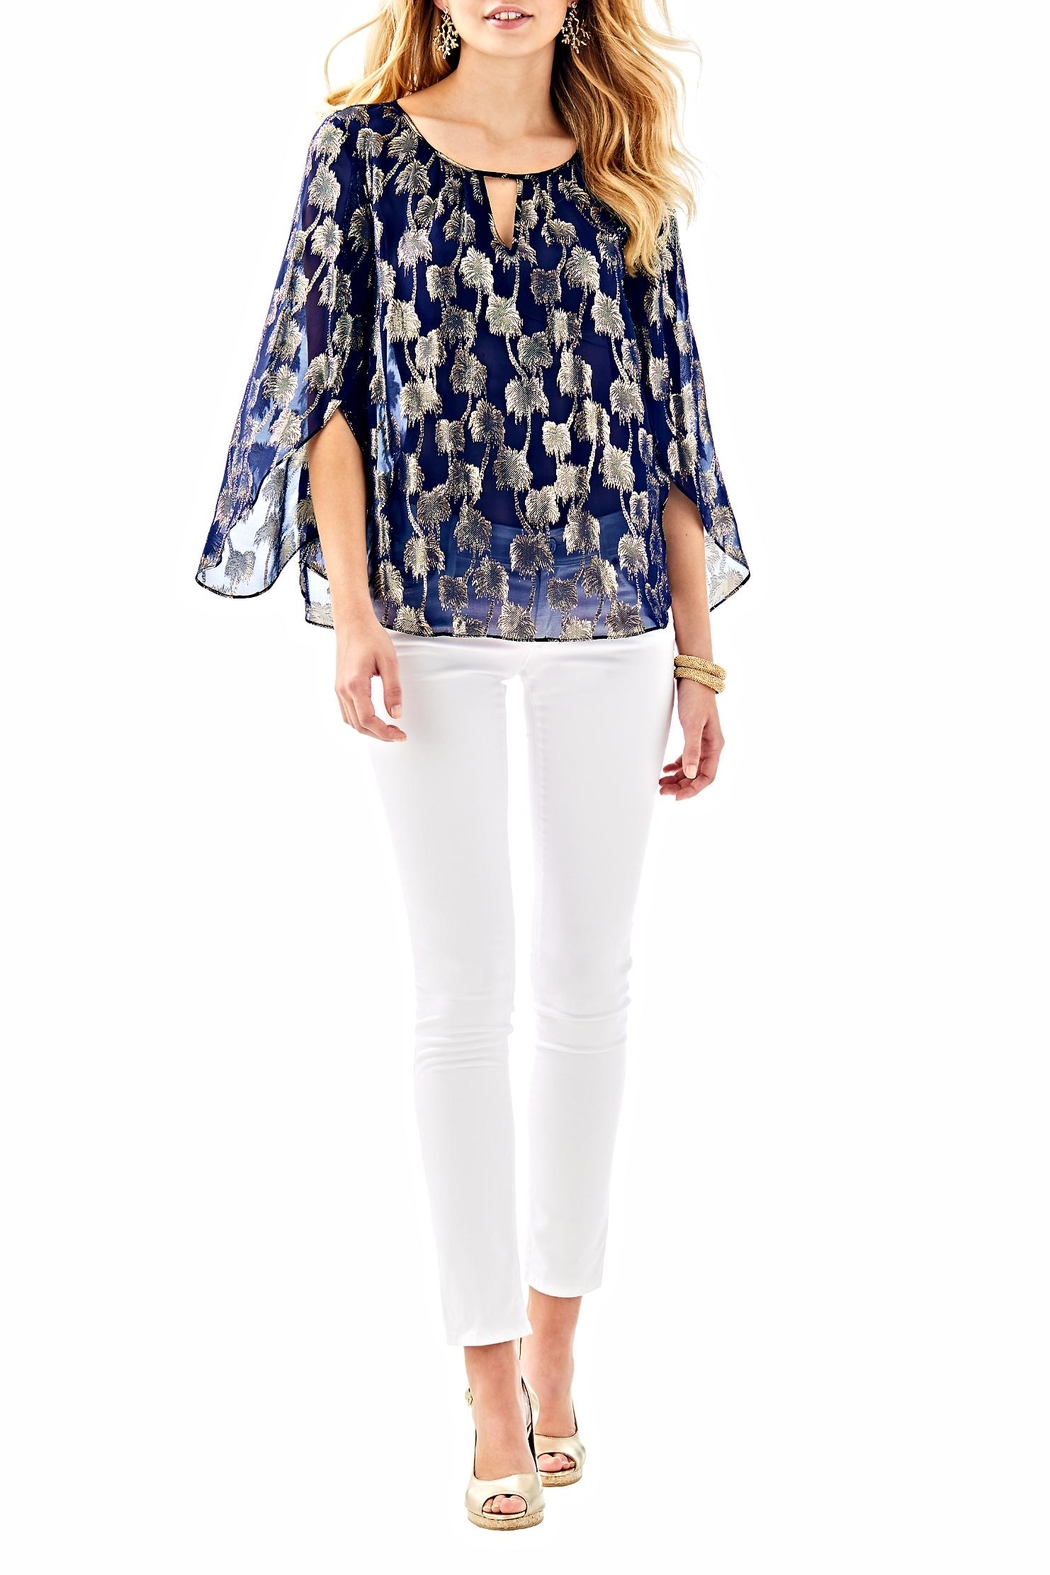 Lilly Pulitzer Beccer Clip Top - Side Cropped Image